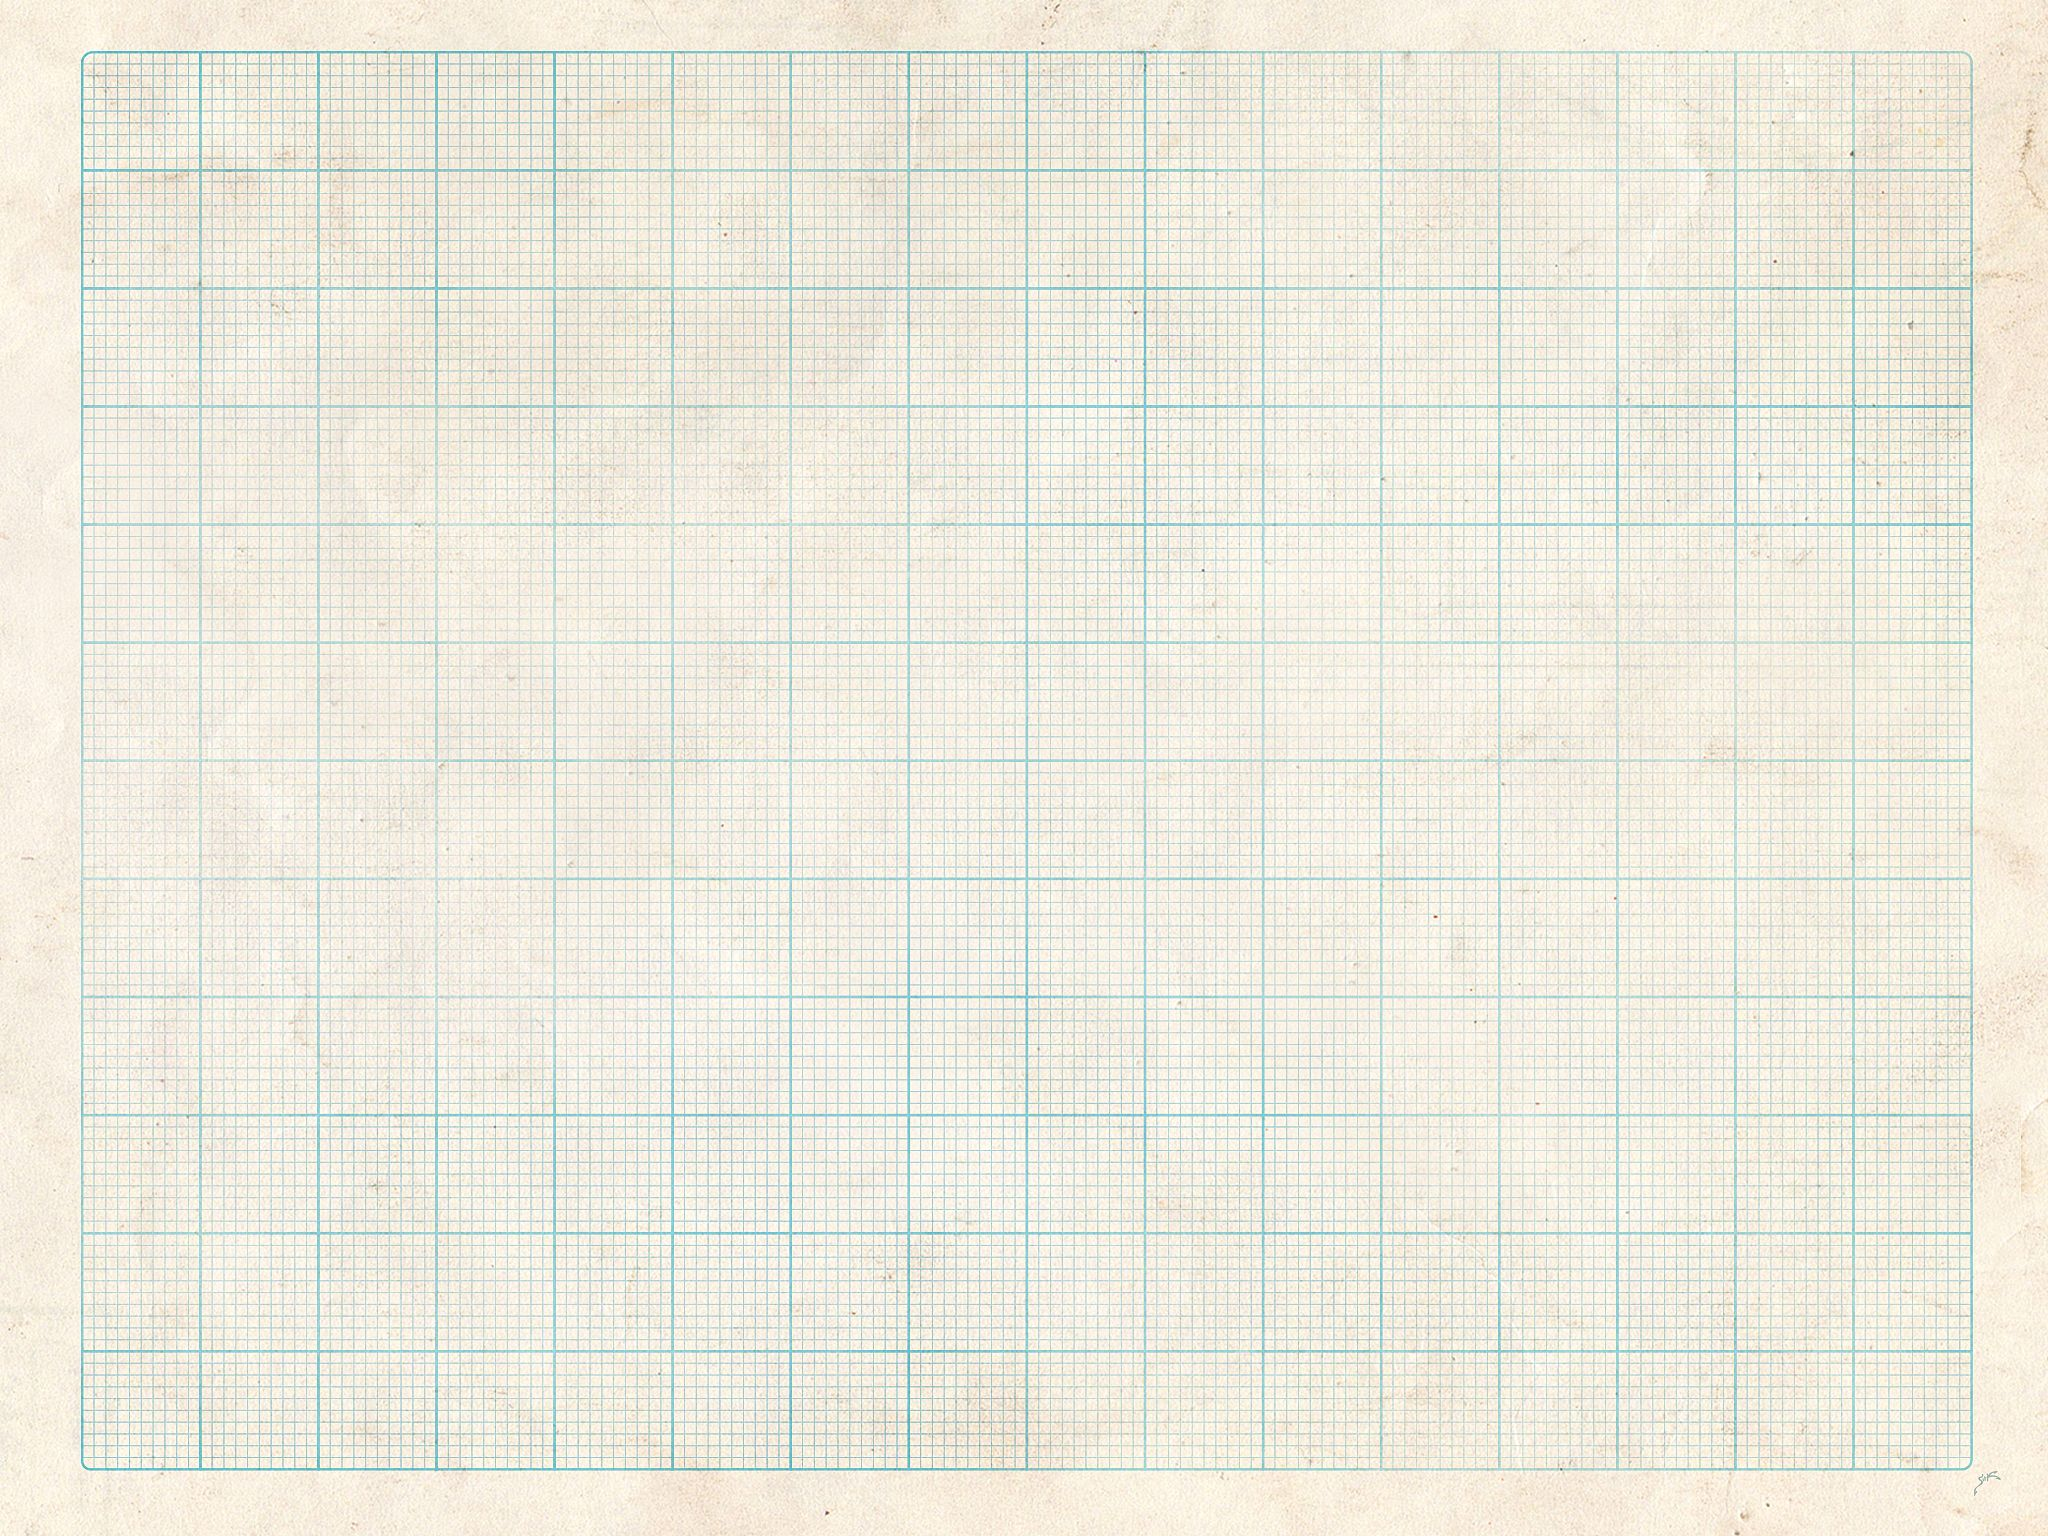 Graph paper for retina ipad noteshelf goodnotes by kostroman graph paper for retina ipad noteshelf goodnotes by kostroman malvernweather